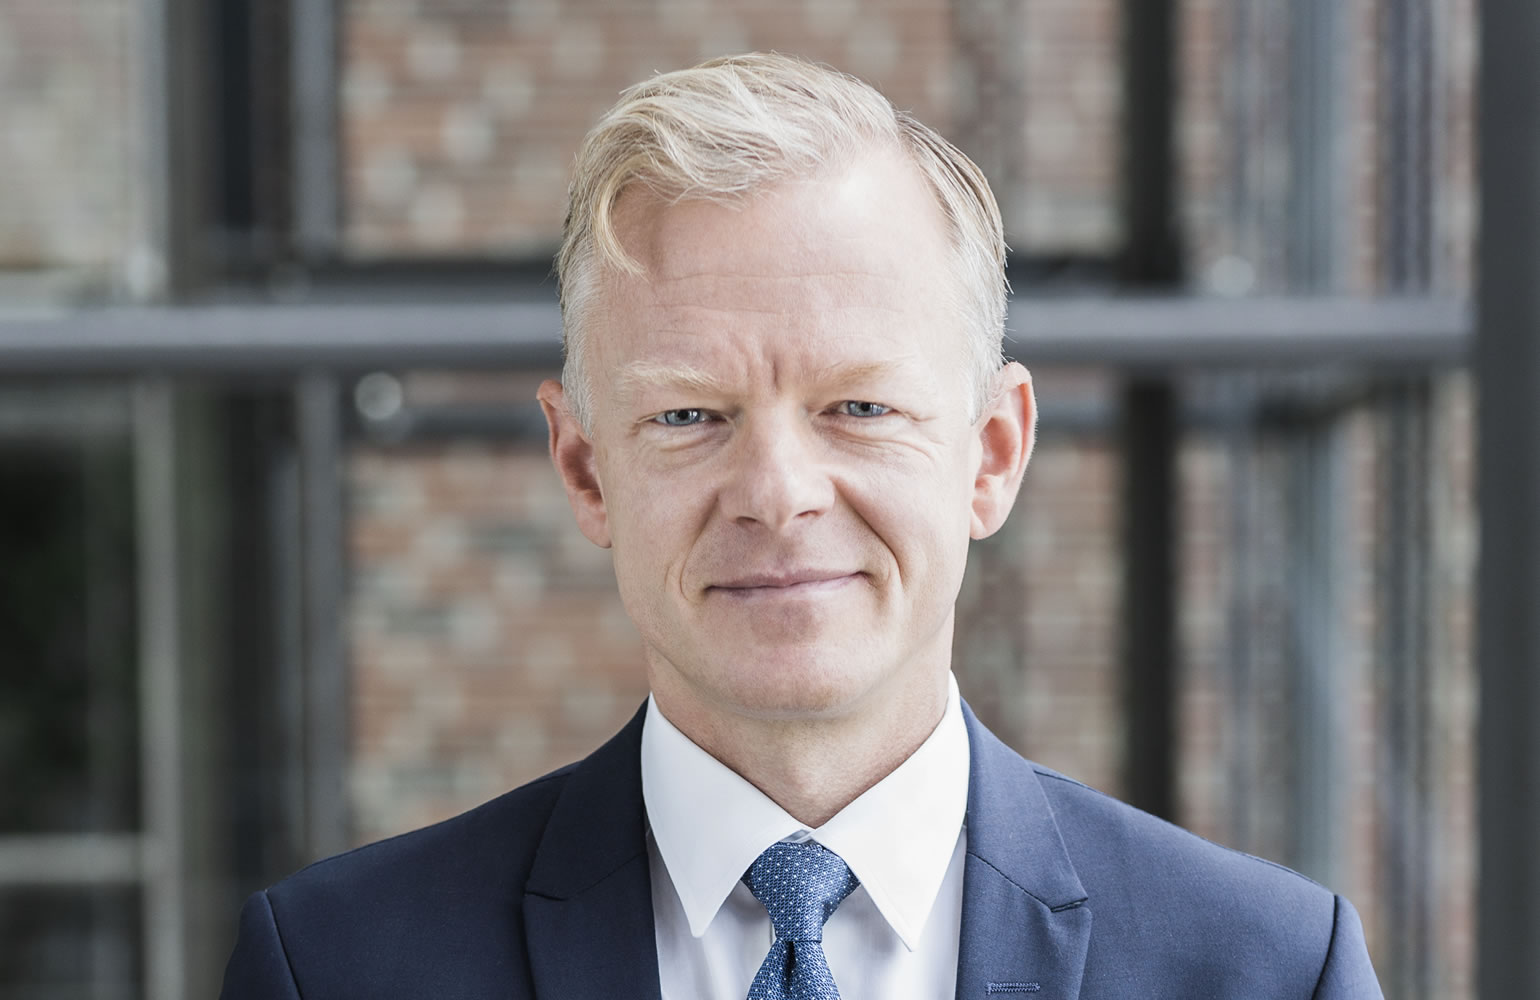 Henrik Udsen, Chairman of the board, DIFO